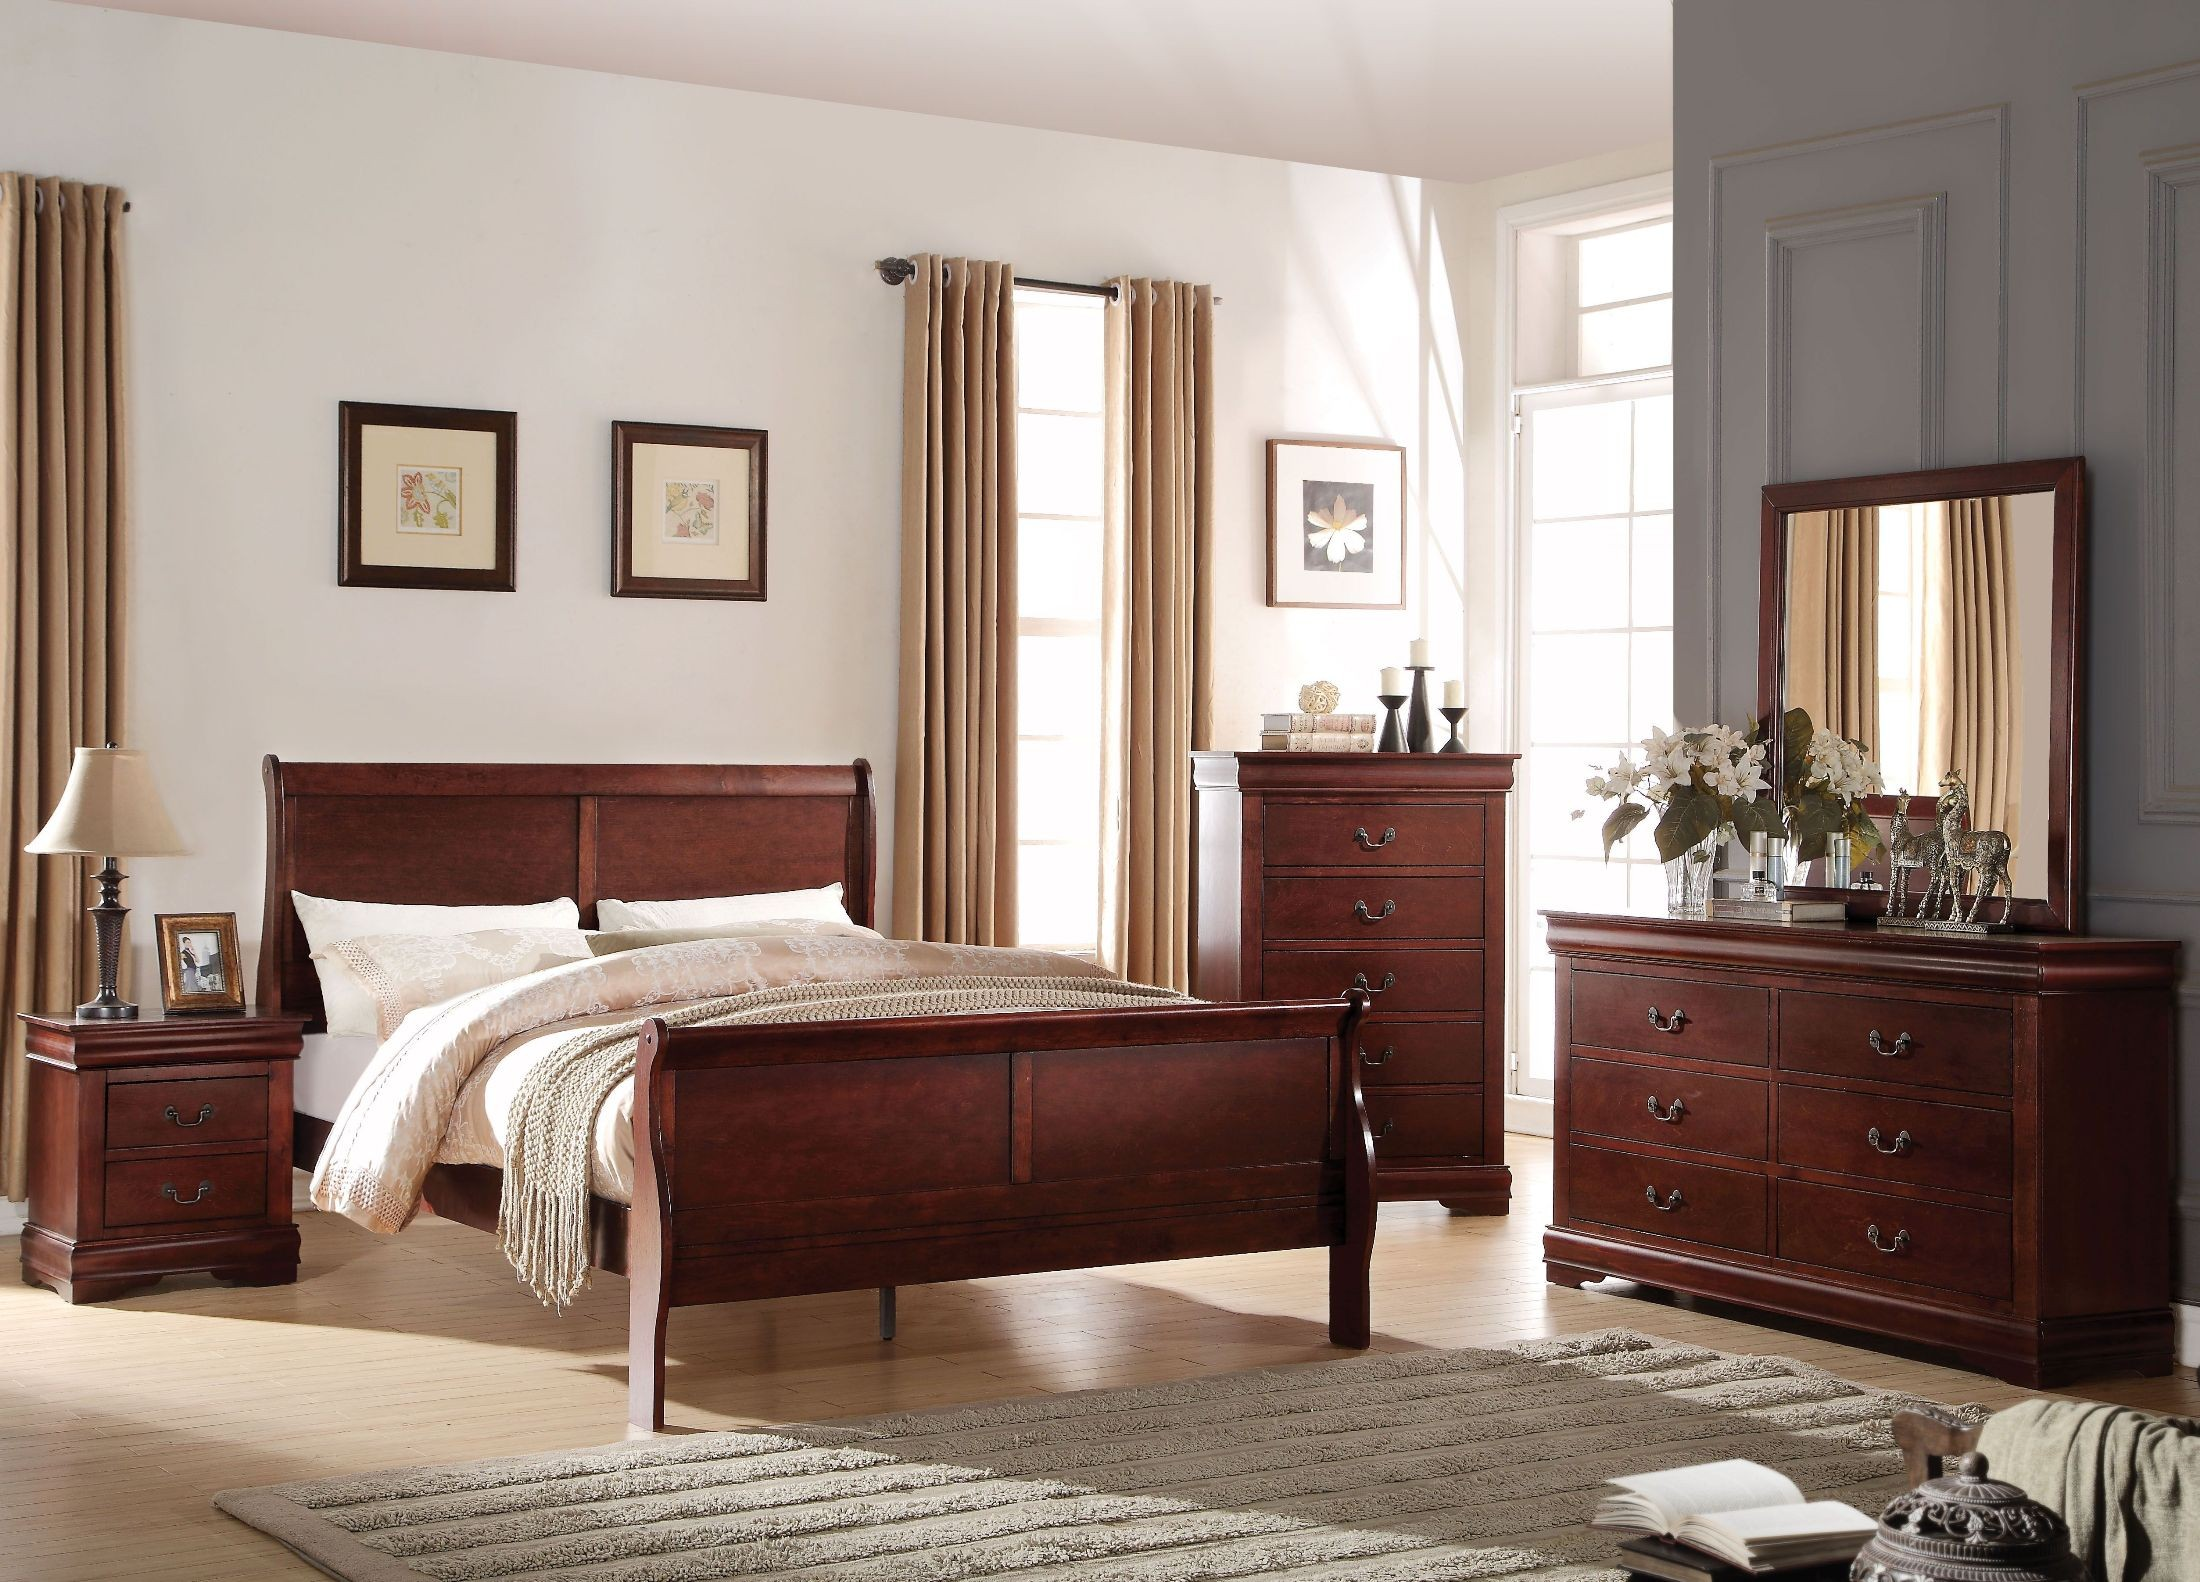 Acme louis philippe cherry youth sleigh bedroom set - Louis philippe bedroom collection ...